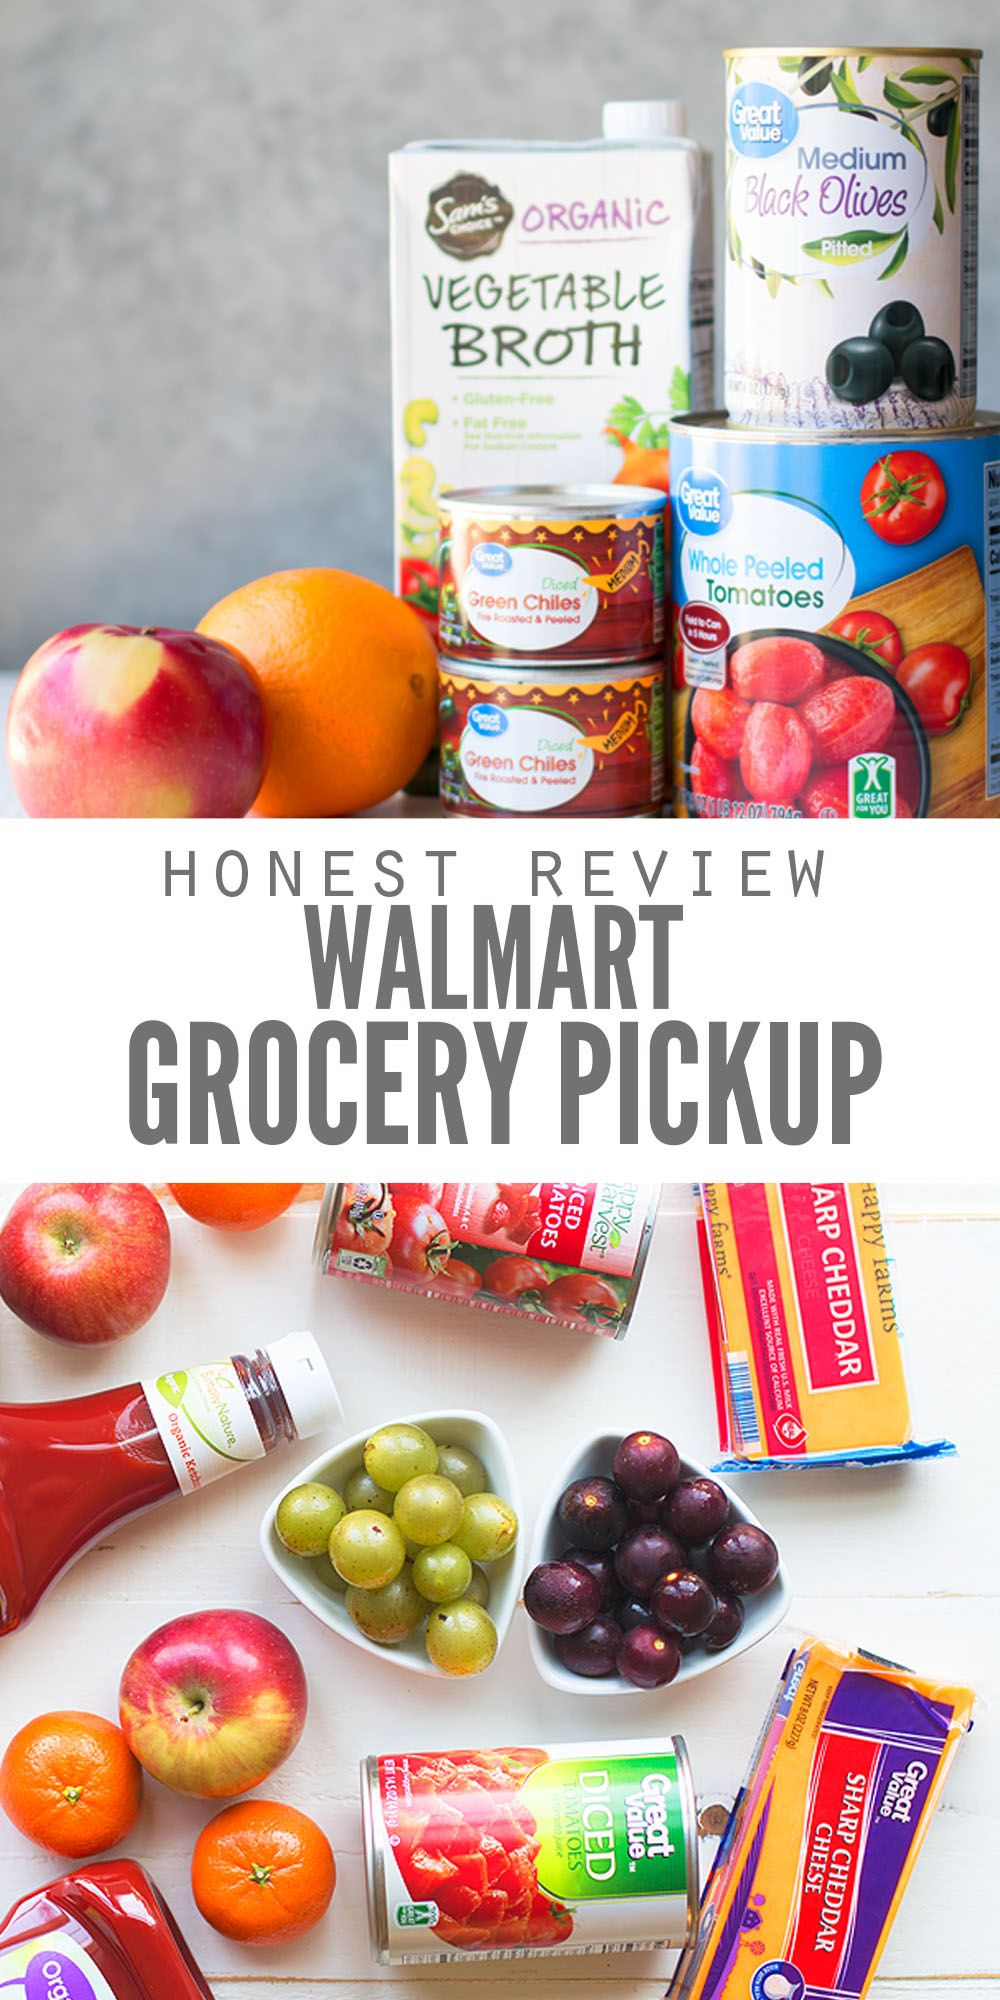 My Personal Experience and Honest Review of Walmart Grocery